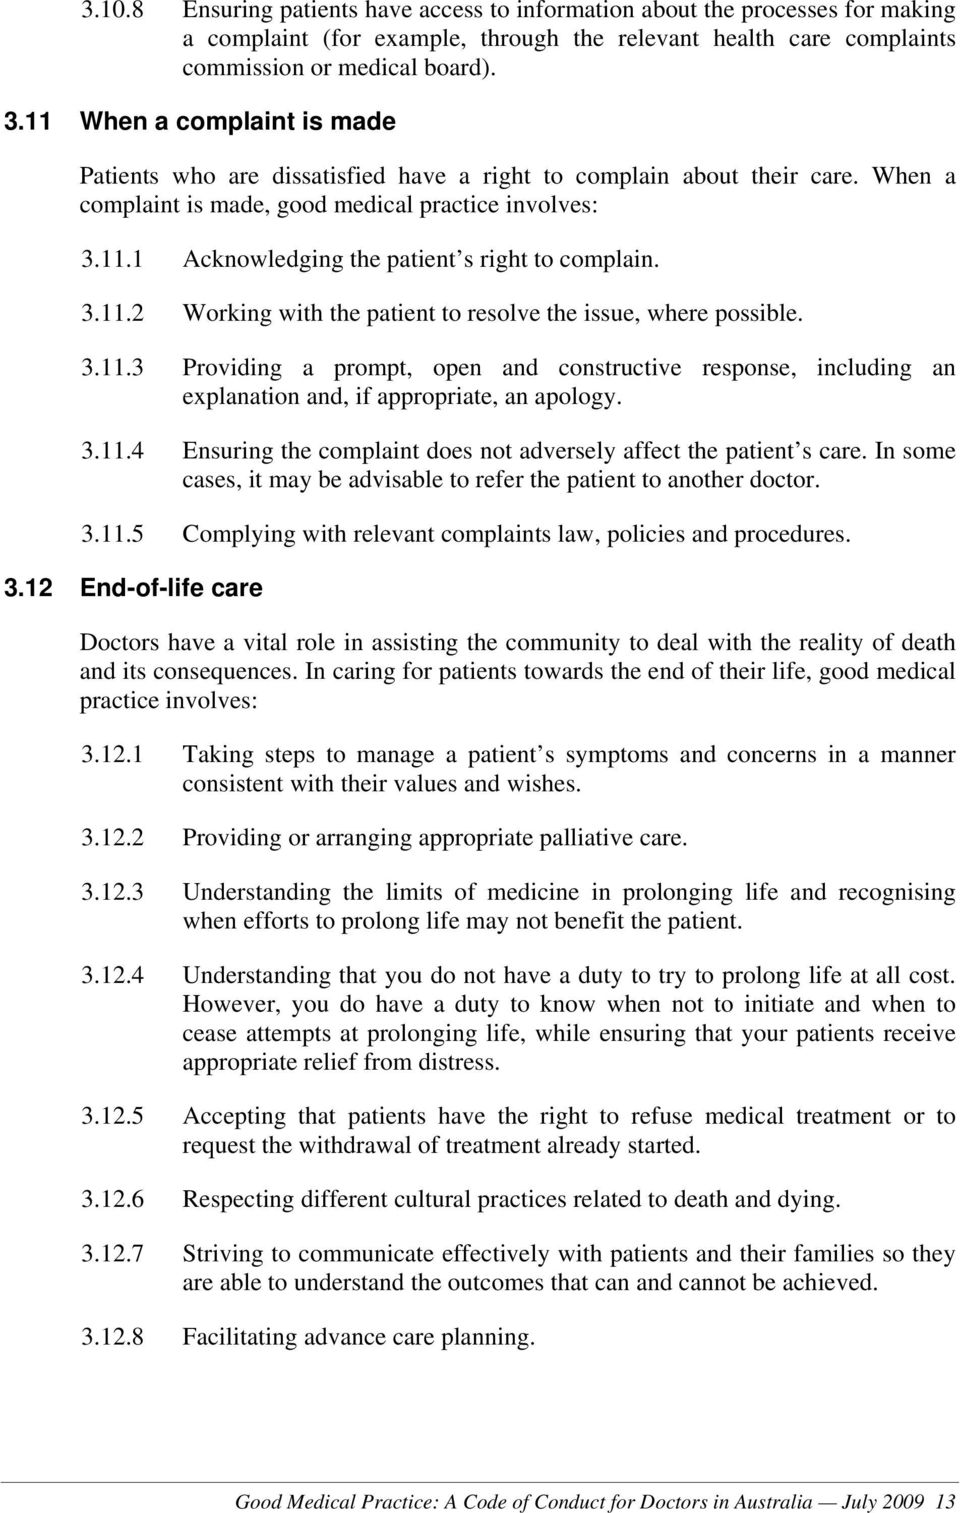 3.11.2 Working with the patient to resolve the issue, where possible. 3.11.3 Providing a prompt, open and constructive response, including an explanation and, if appropriate, an apology. 3.11.4 Ensuring the complaint does not adversely affect the patient s care.